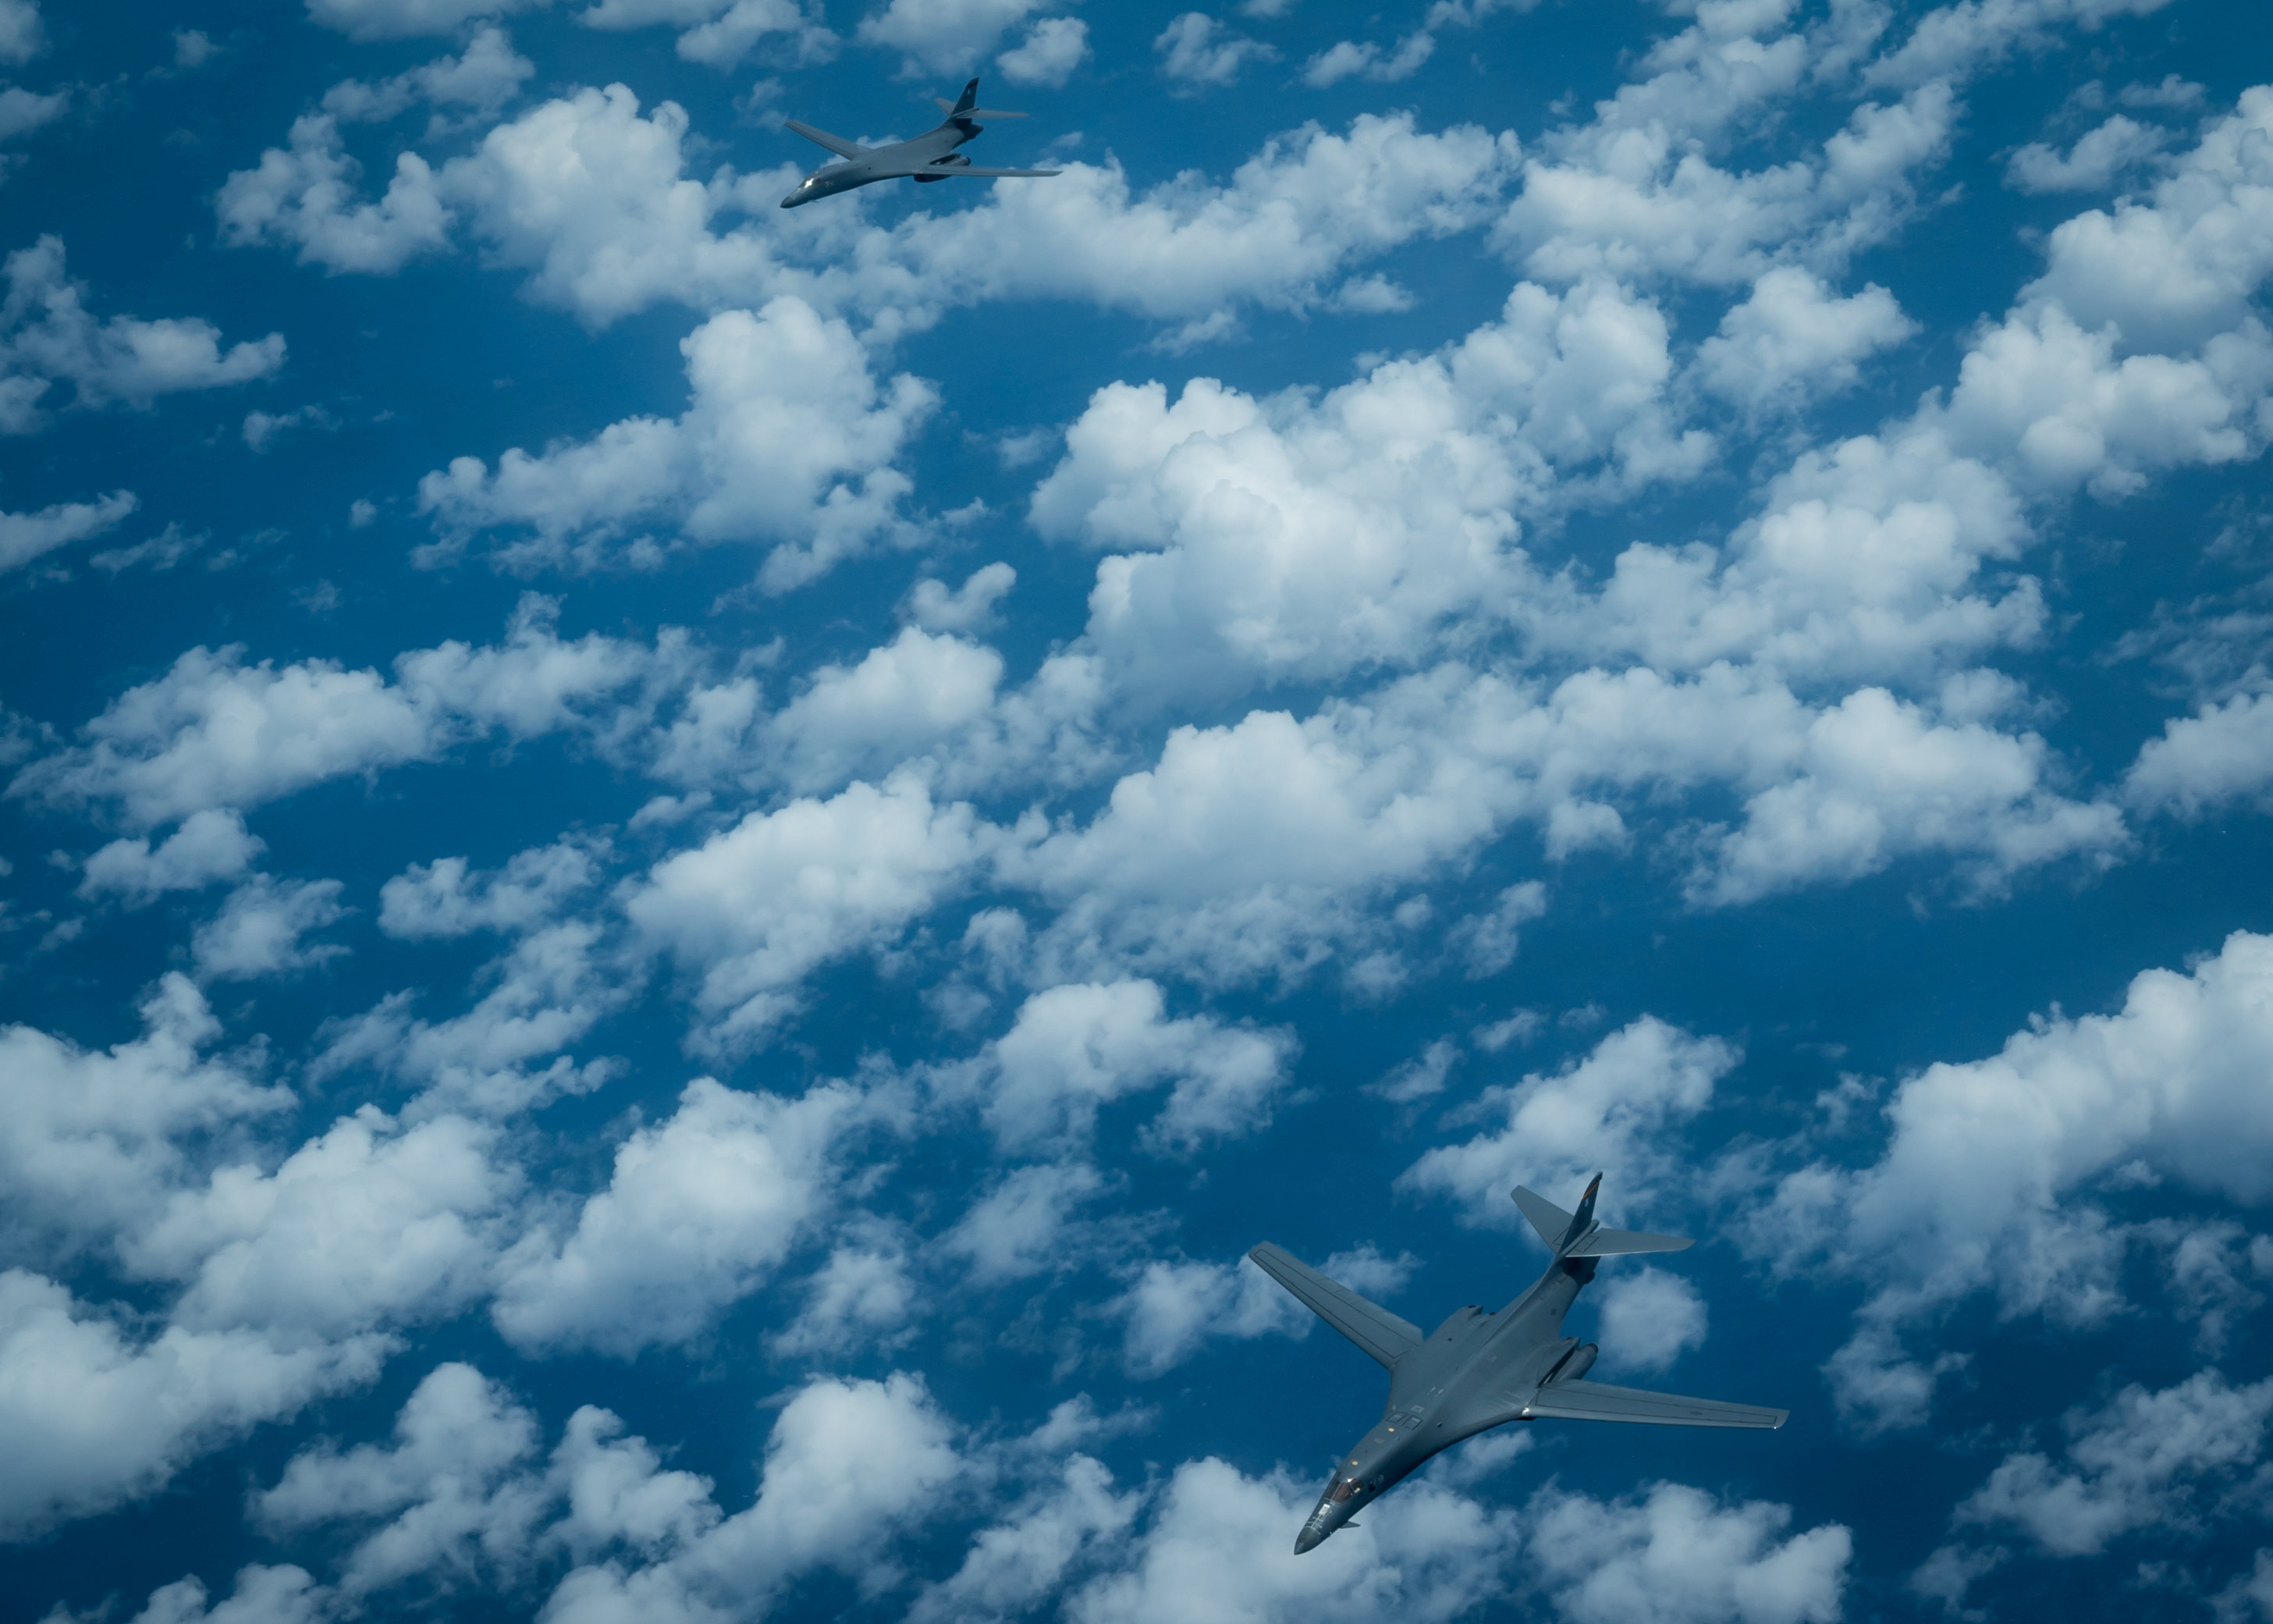 U.S. Air Force B-1B Lancer fly a mission from Andersen Air Force Base, Guam, into Japanese airspace and over the Korean Peninsula on Aug. 31, 2017. (Staff Sgt. Joshua Smoot/U.S. Air Force/Handout via REUTERS)